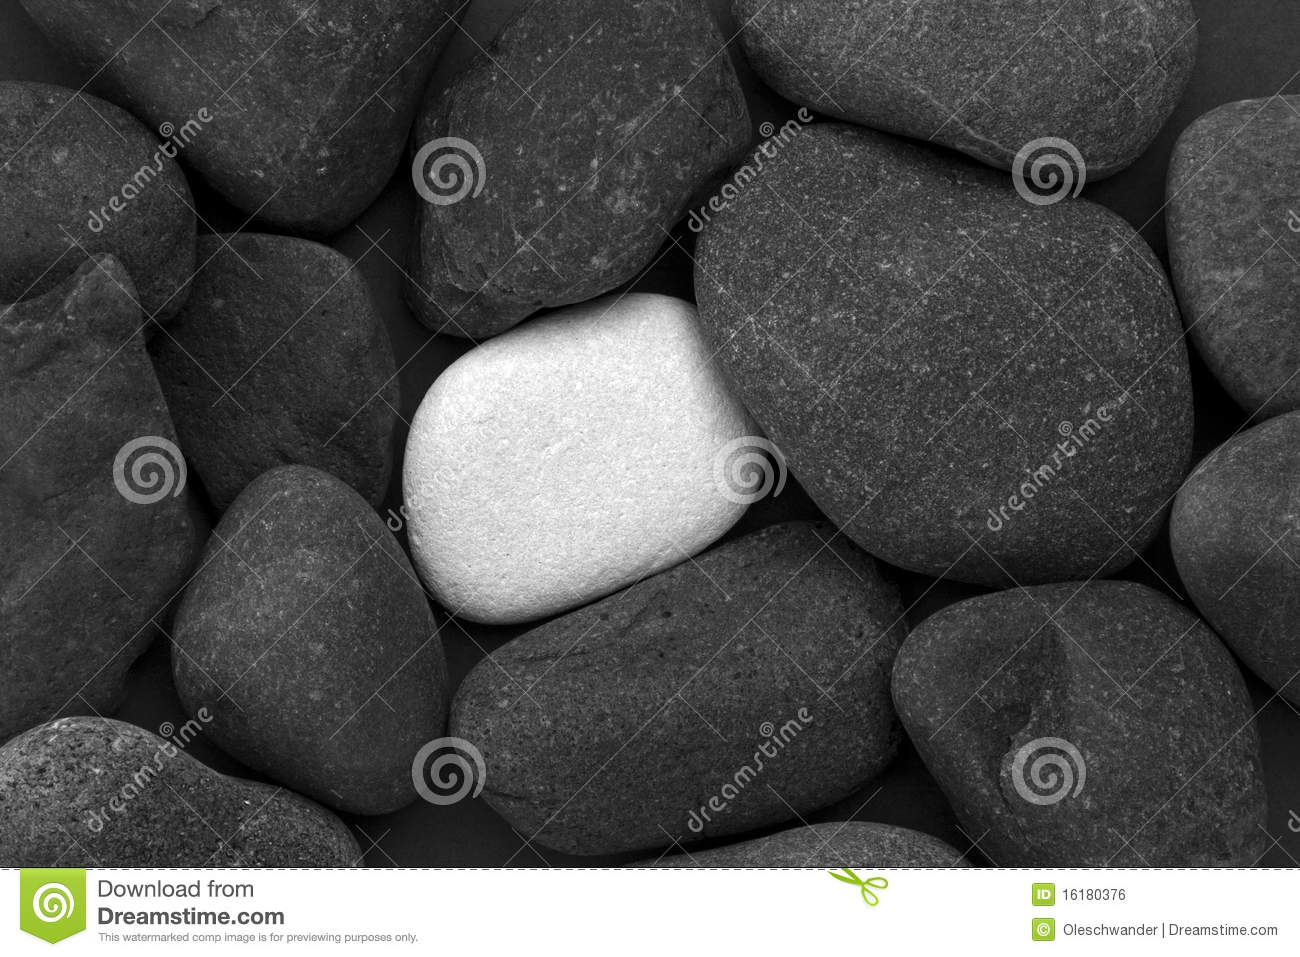 Pile of black stones and one white stone